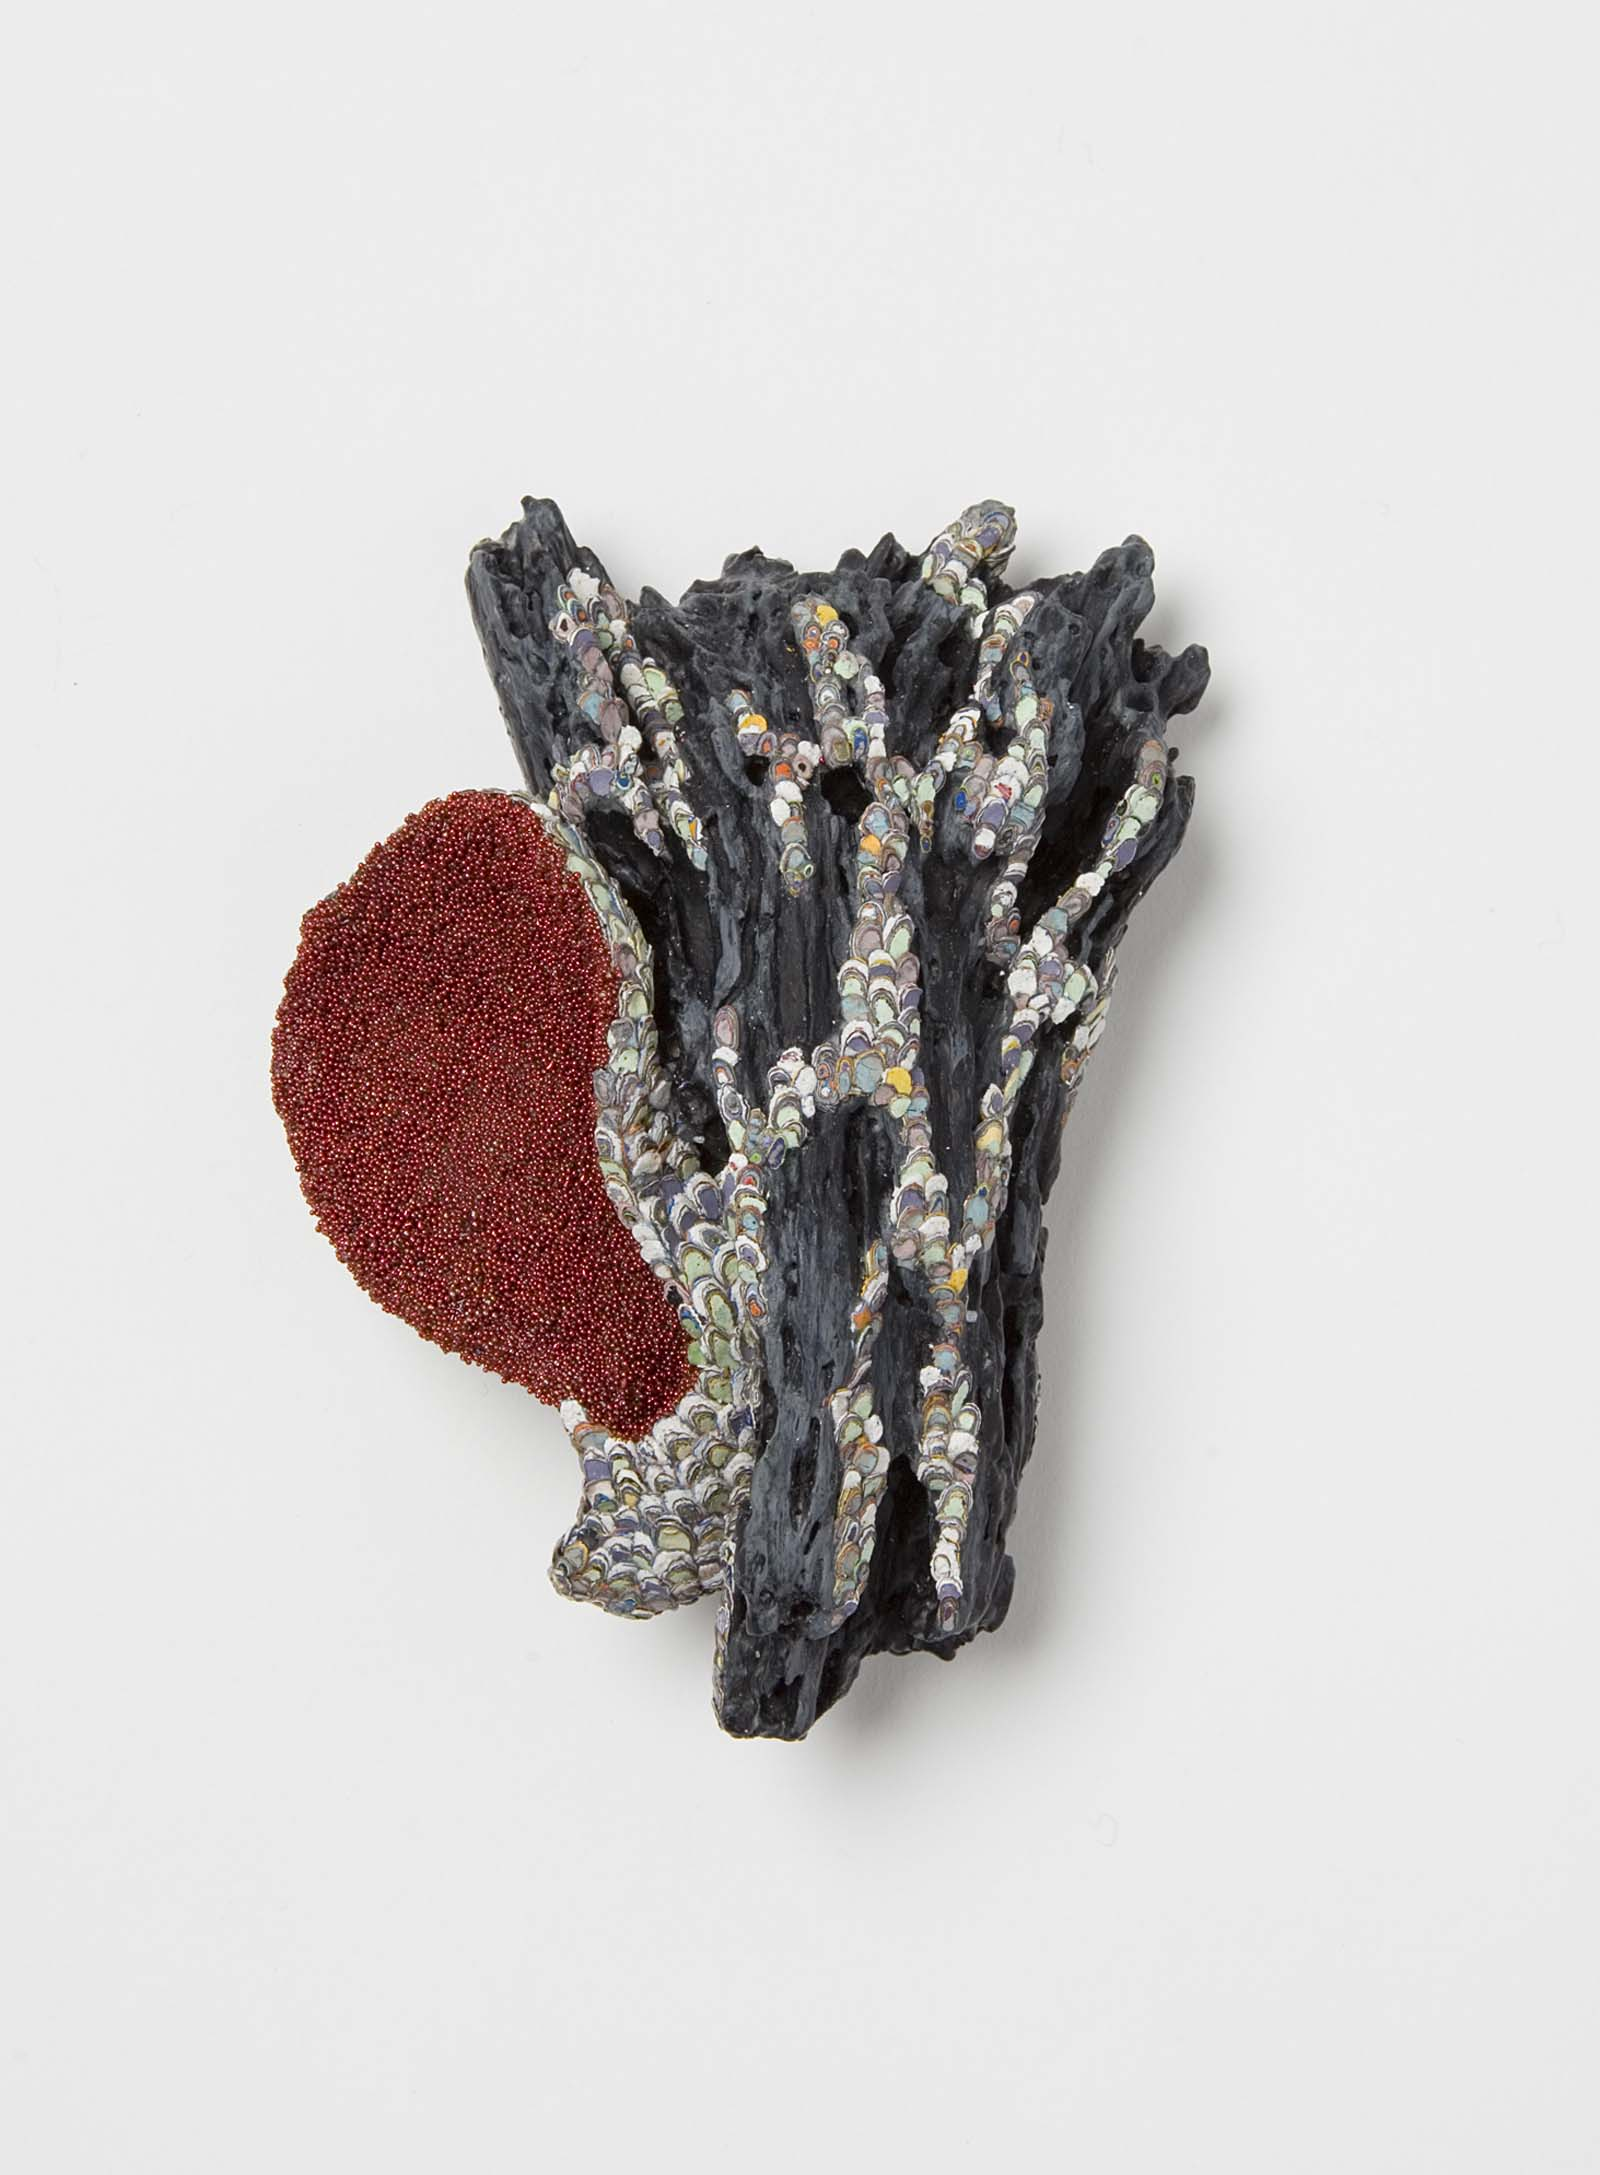 """Carnivore 2"" I Brooch, 2015 I Wood, graffiti, oyster shell, glass, silver, stainless steel, paint I Photo: Mirei Takeuchi"